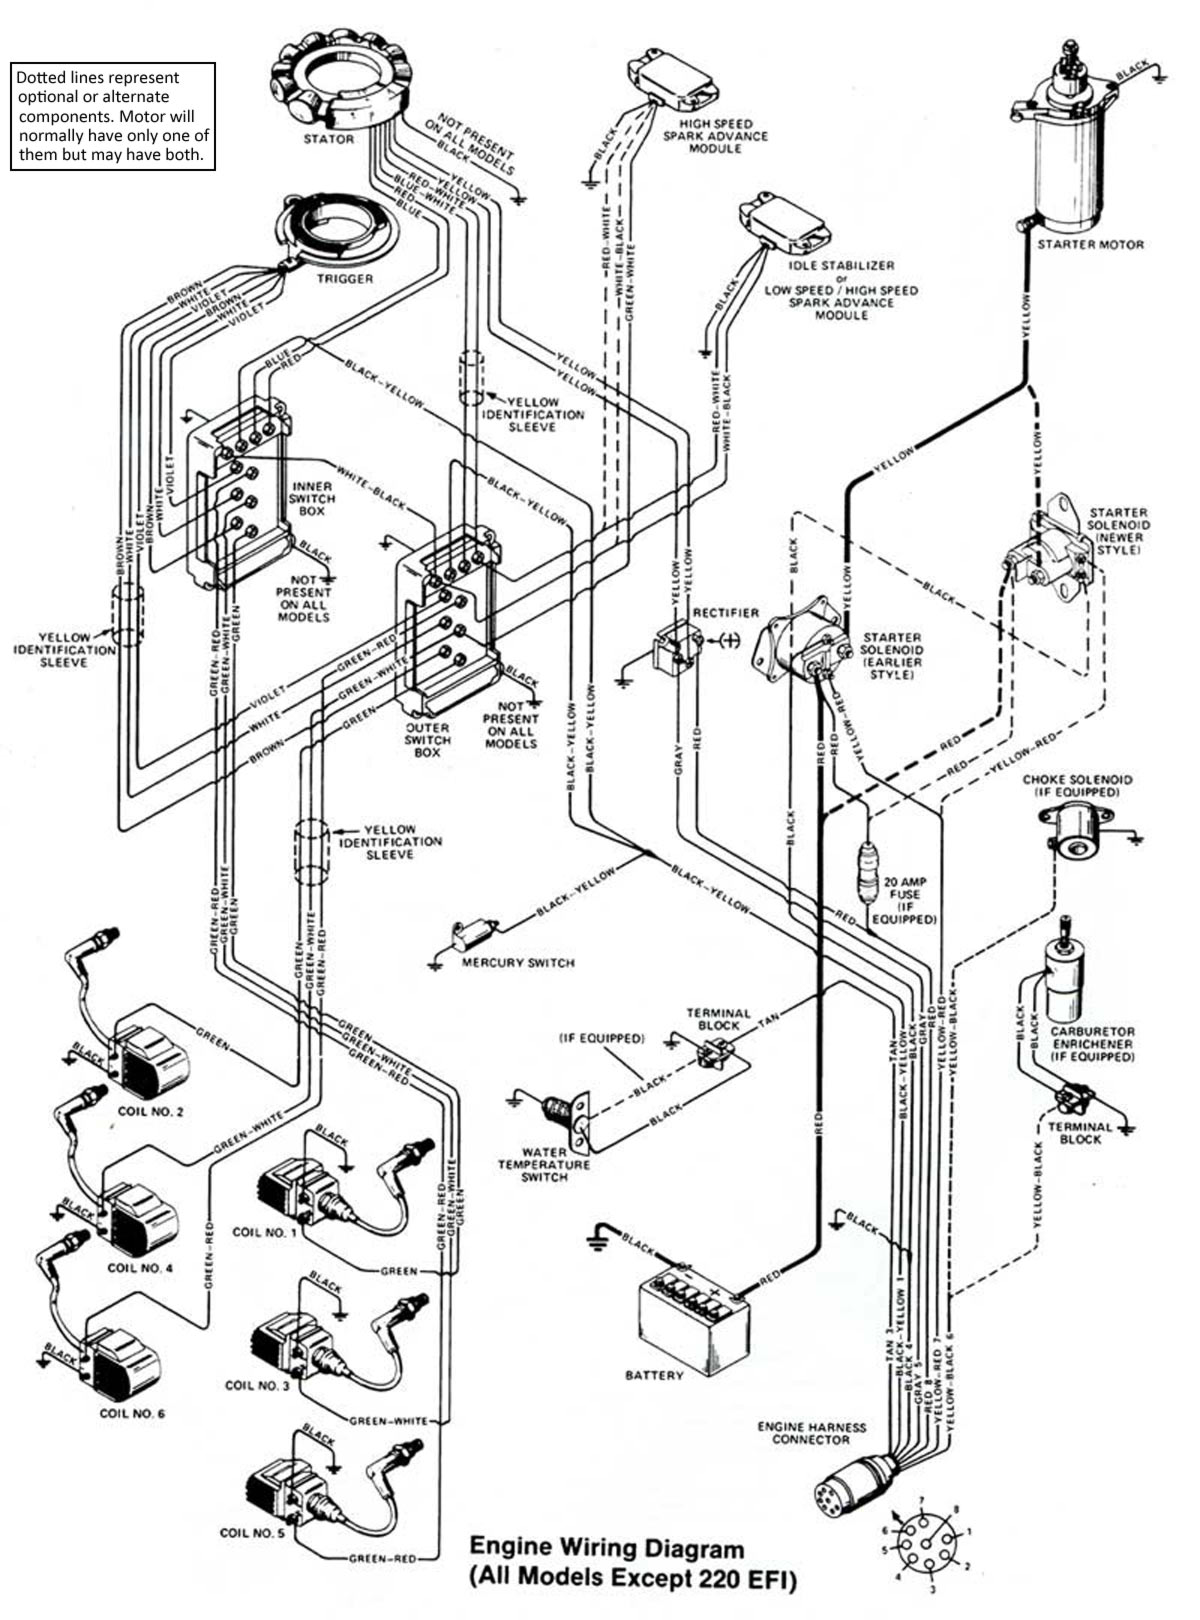 Mercury Wiring Harness Iboats - wiring diagrams schematics